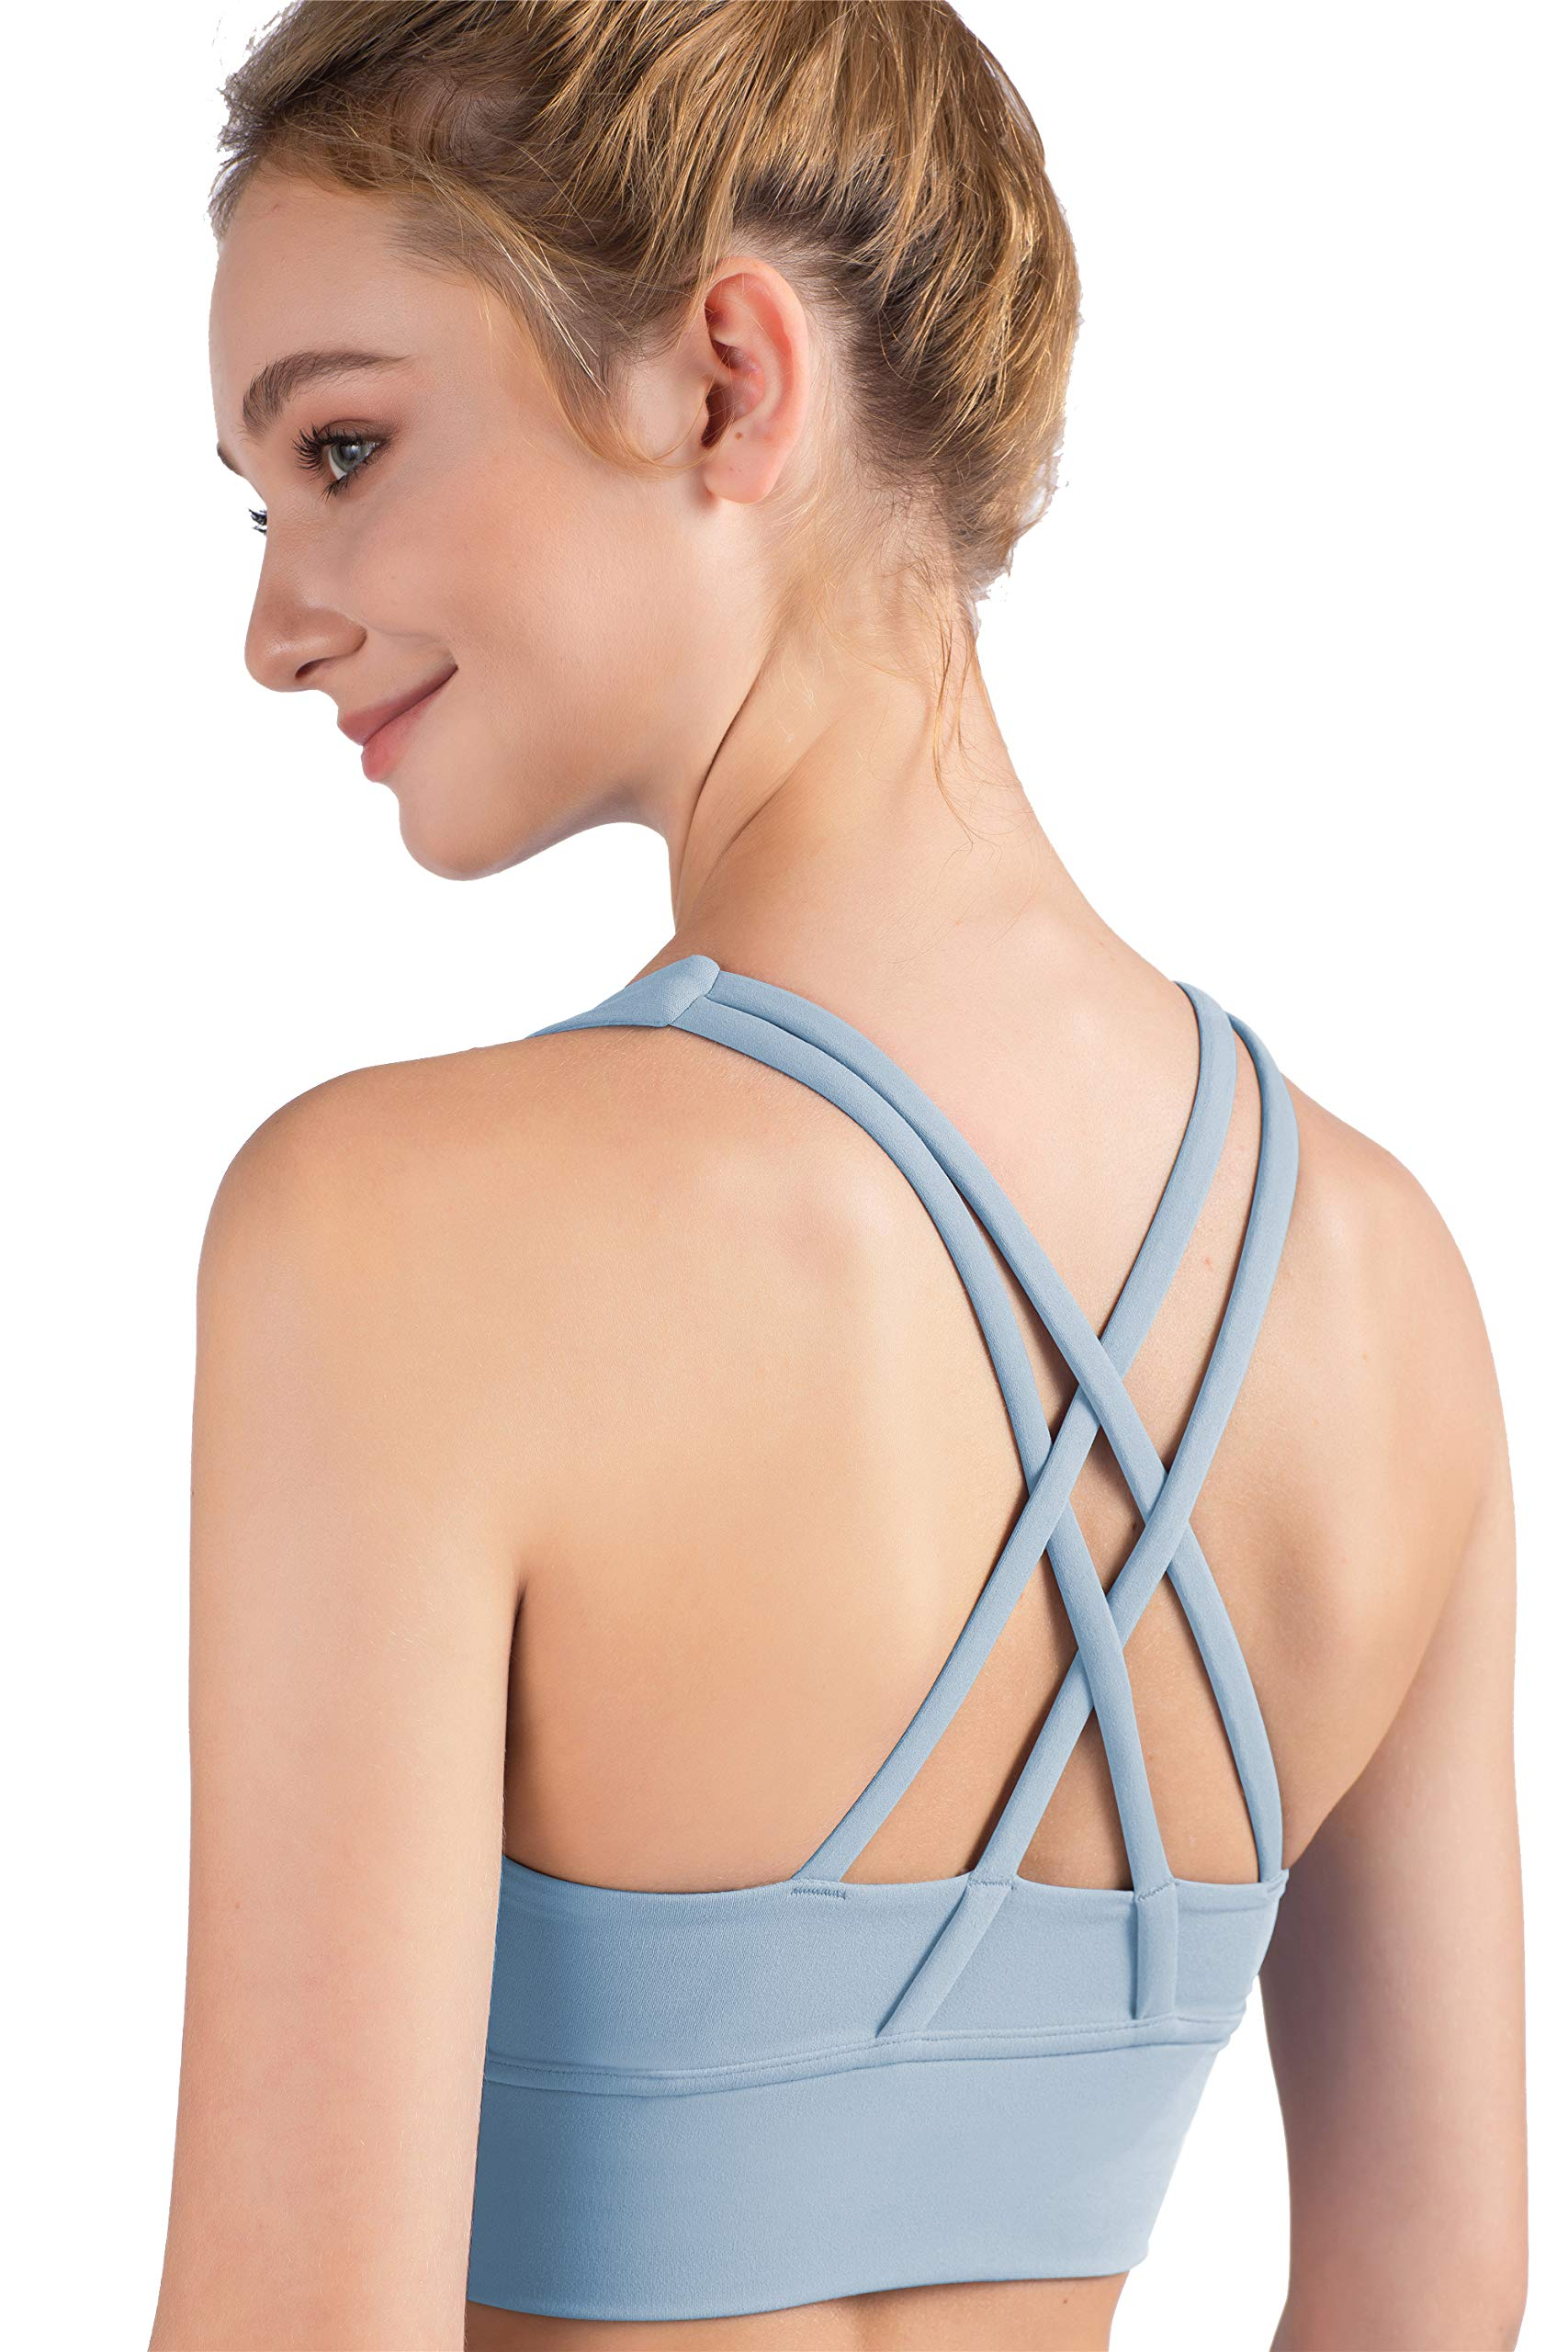 Ardunzz Pad Workout Sports Bras for Women Strappy Wirefree Yoga Gym Running Fitness Home Tops